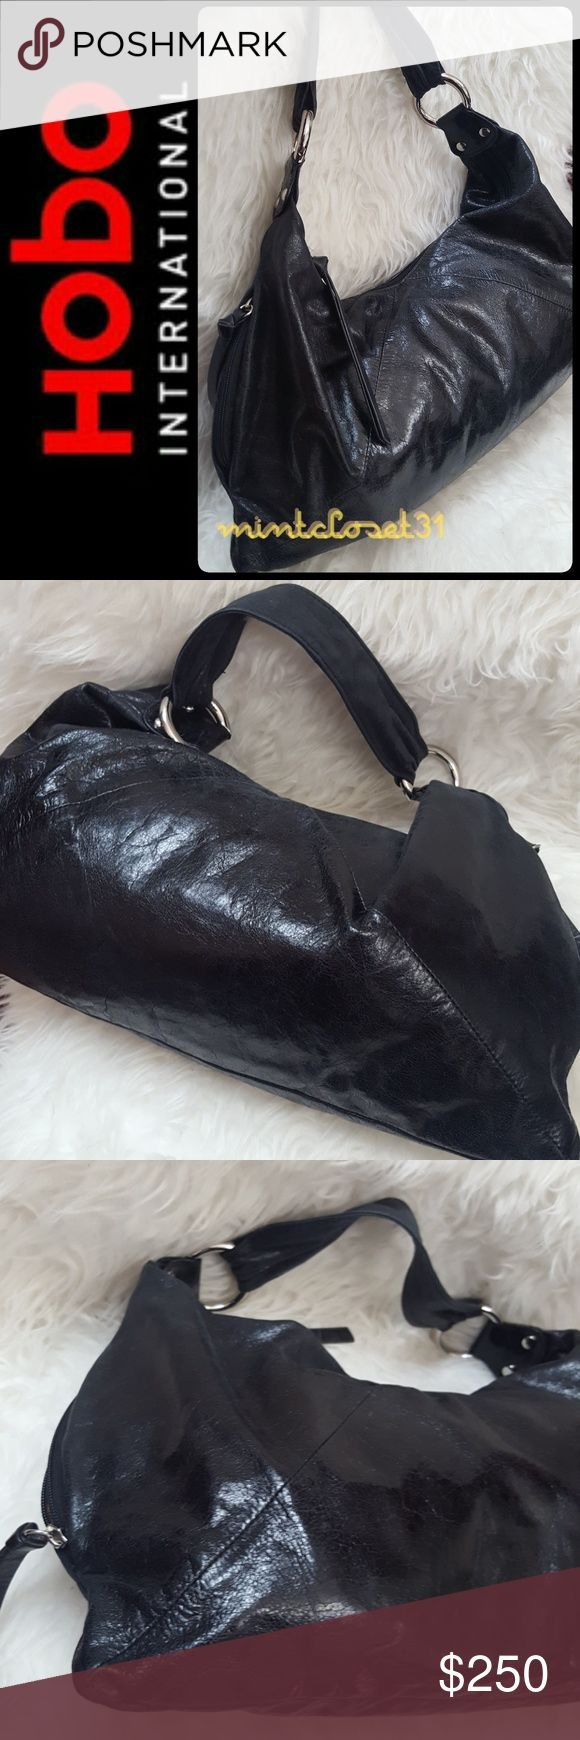 Hobo International Leather Bag New!!! Hobo International Signature Bag in Rare Limited Edition Genuine Leather Hobo! Gorgeously Created with Combined Luxury of Black Leather in Slouchy Silhouette! Silver Tone Hardware with Round Metal on both Ends! Minimalistic style For Everyday Use!  Classy Single Handle Drop About 9 Inches! Top Zipper Closure Opens to Fully Lined Interior with Zipped and Slip Pockets! Very Soft and Luxurious! NEW WITHOUT TAG!! 9x17 inches HOBO Bags Hobos